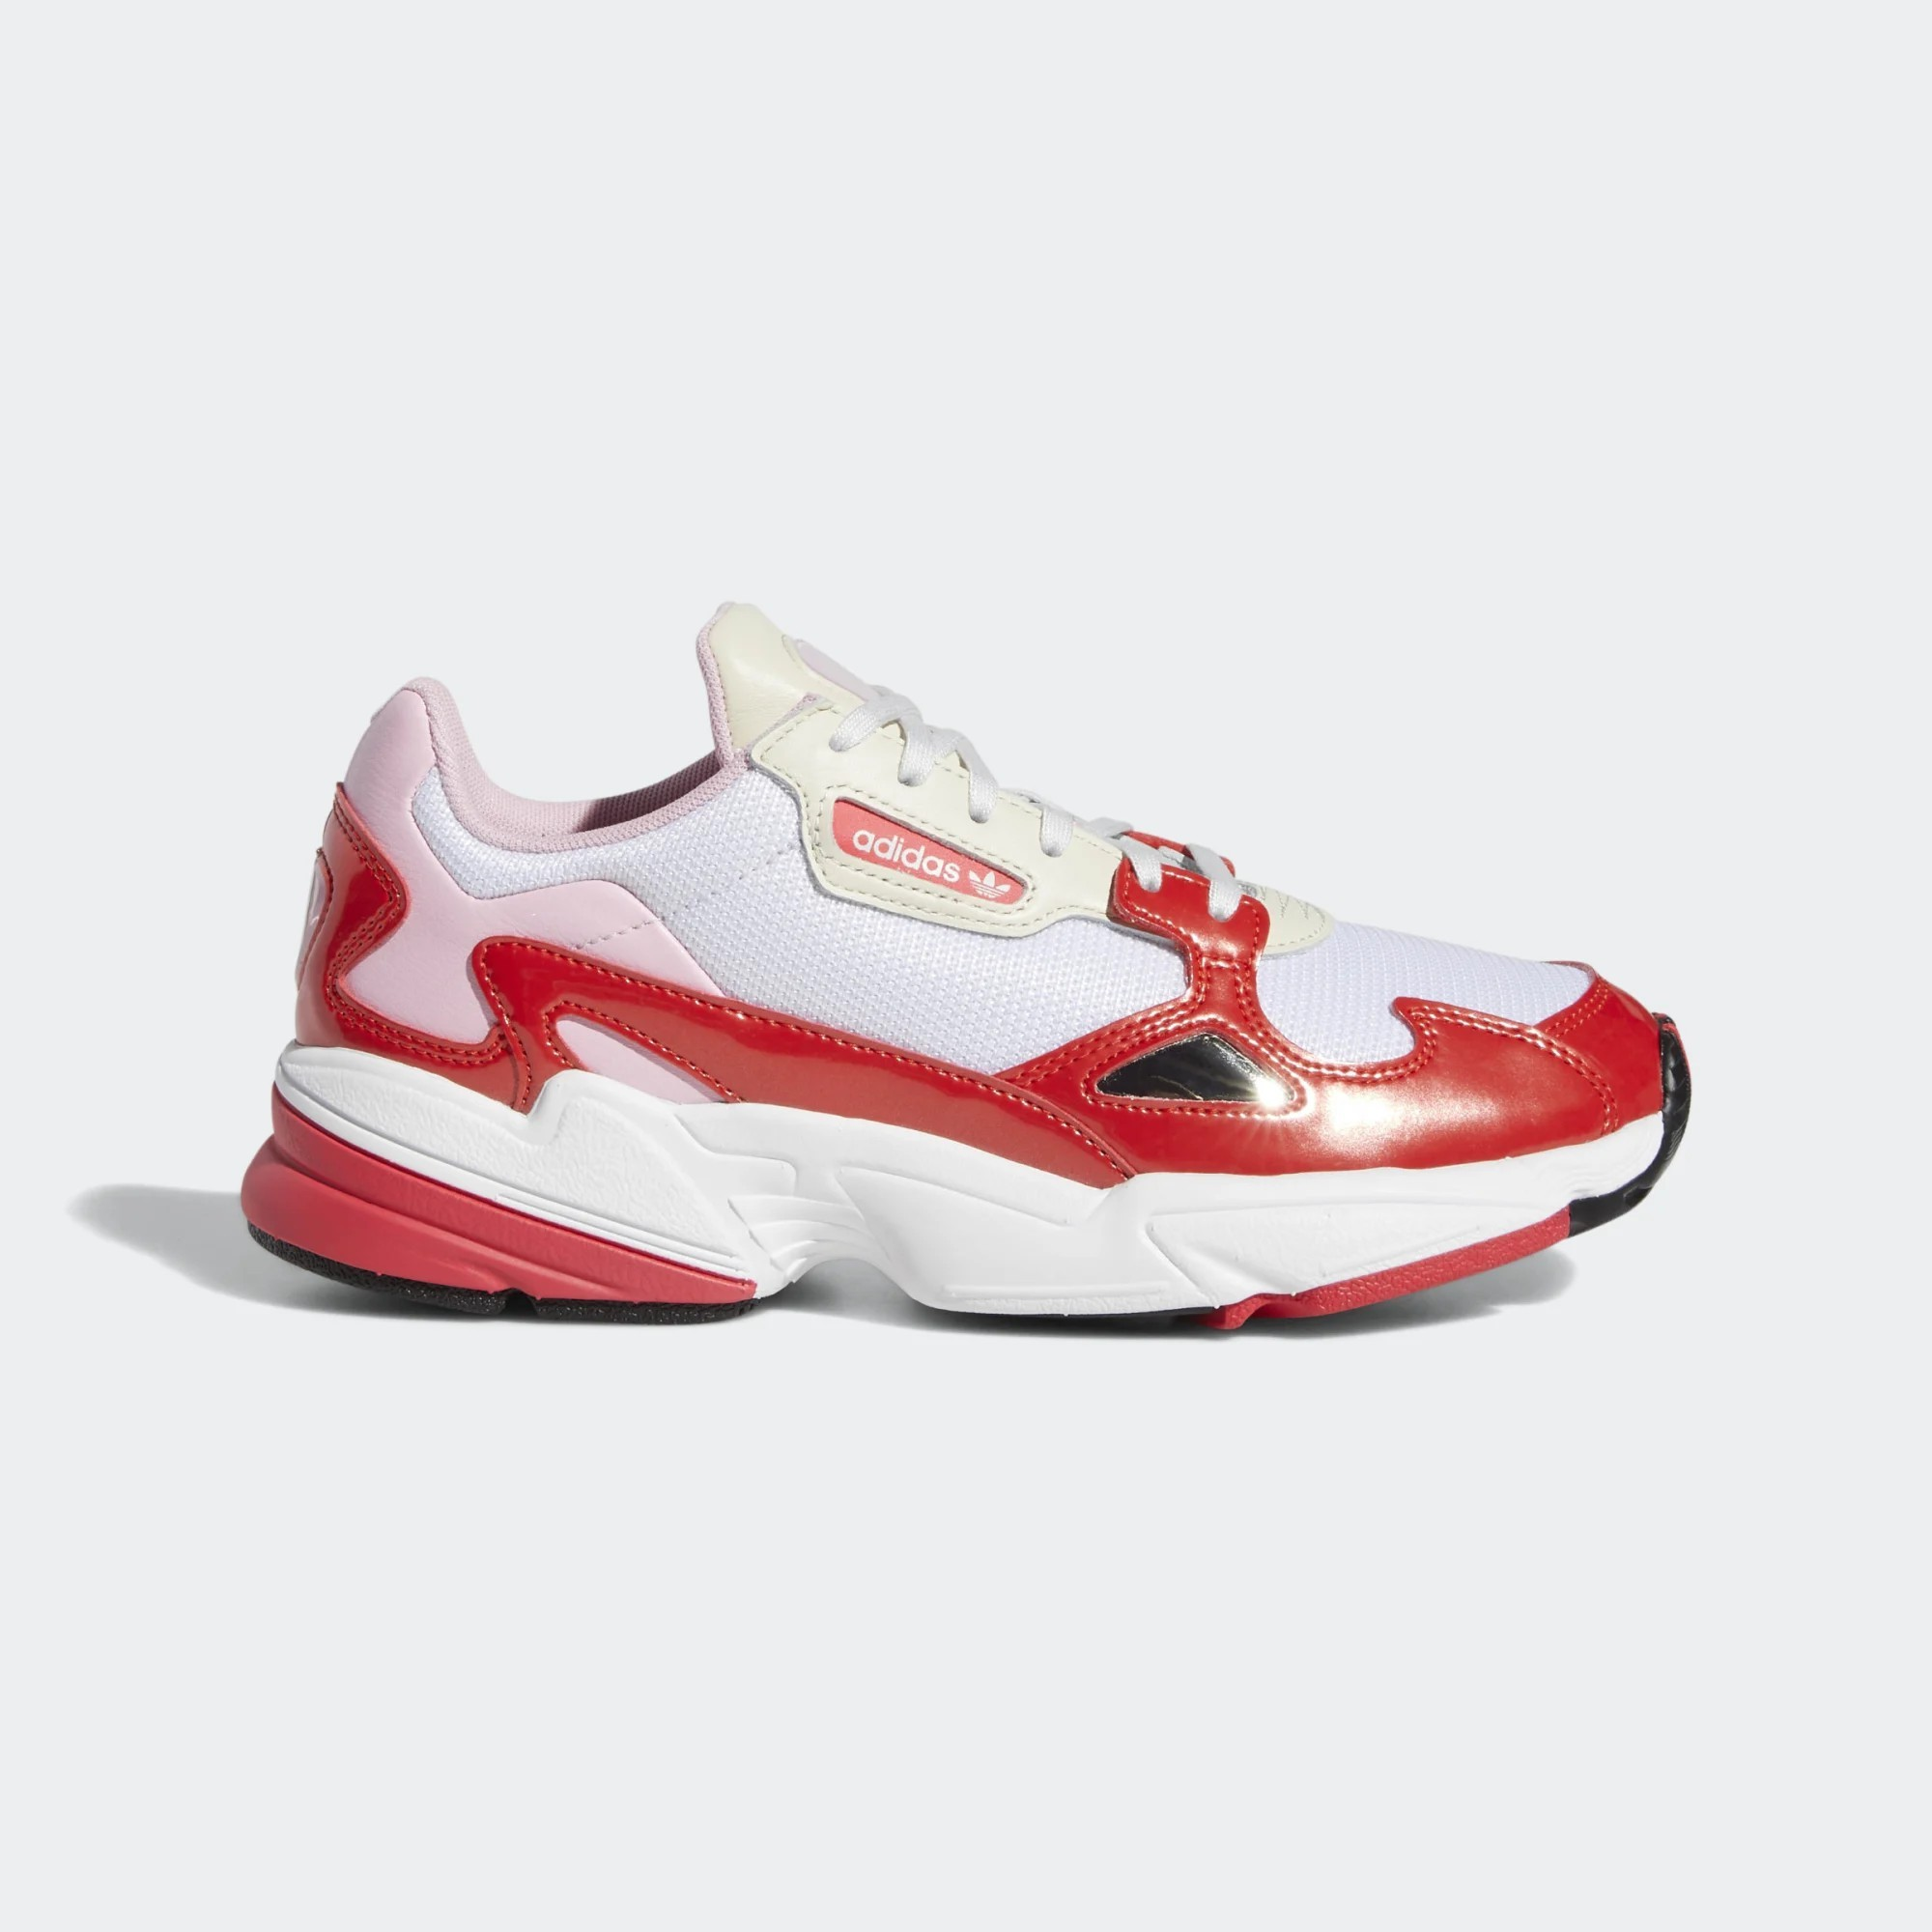 Adidas Women's Originals Falcon Shoes White/Red EE3830